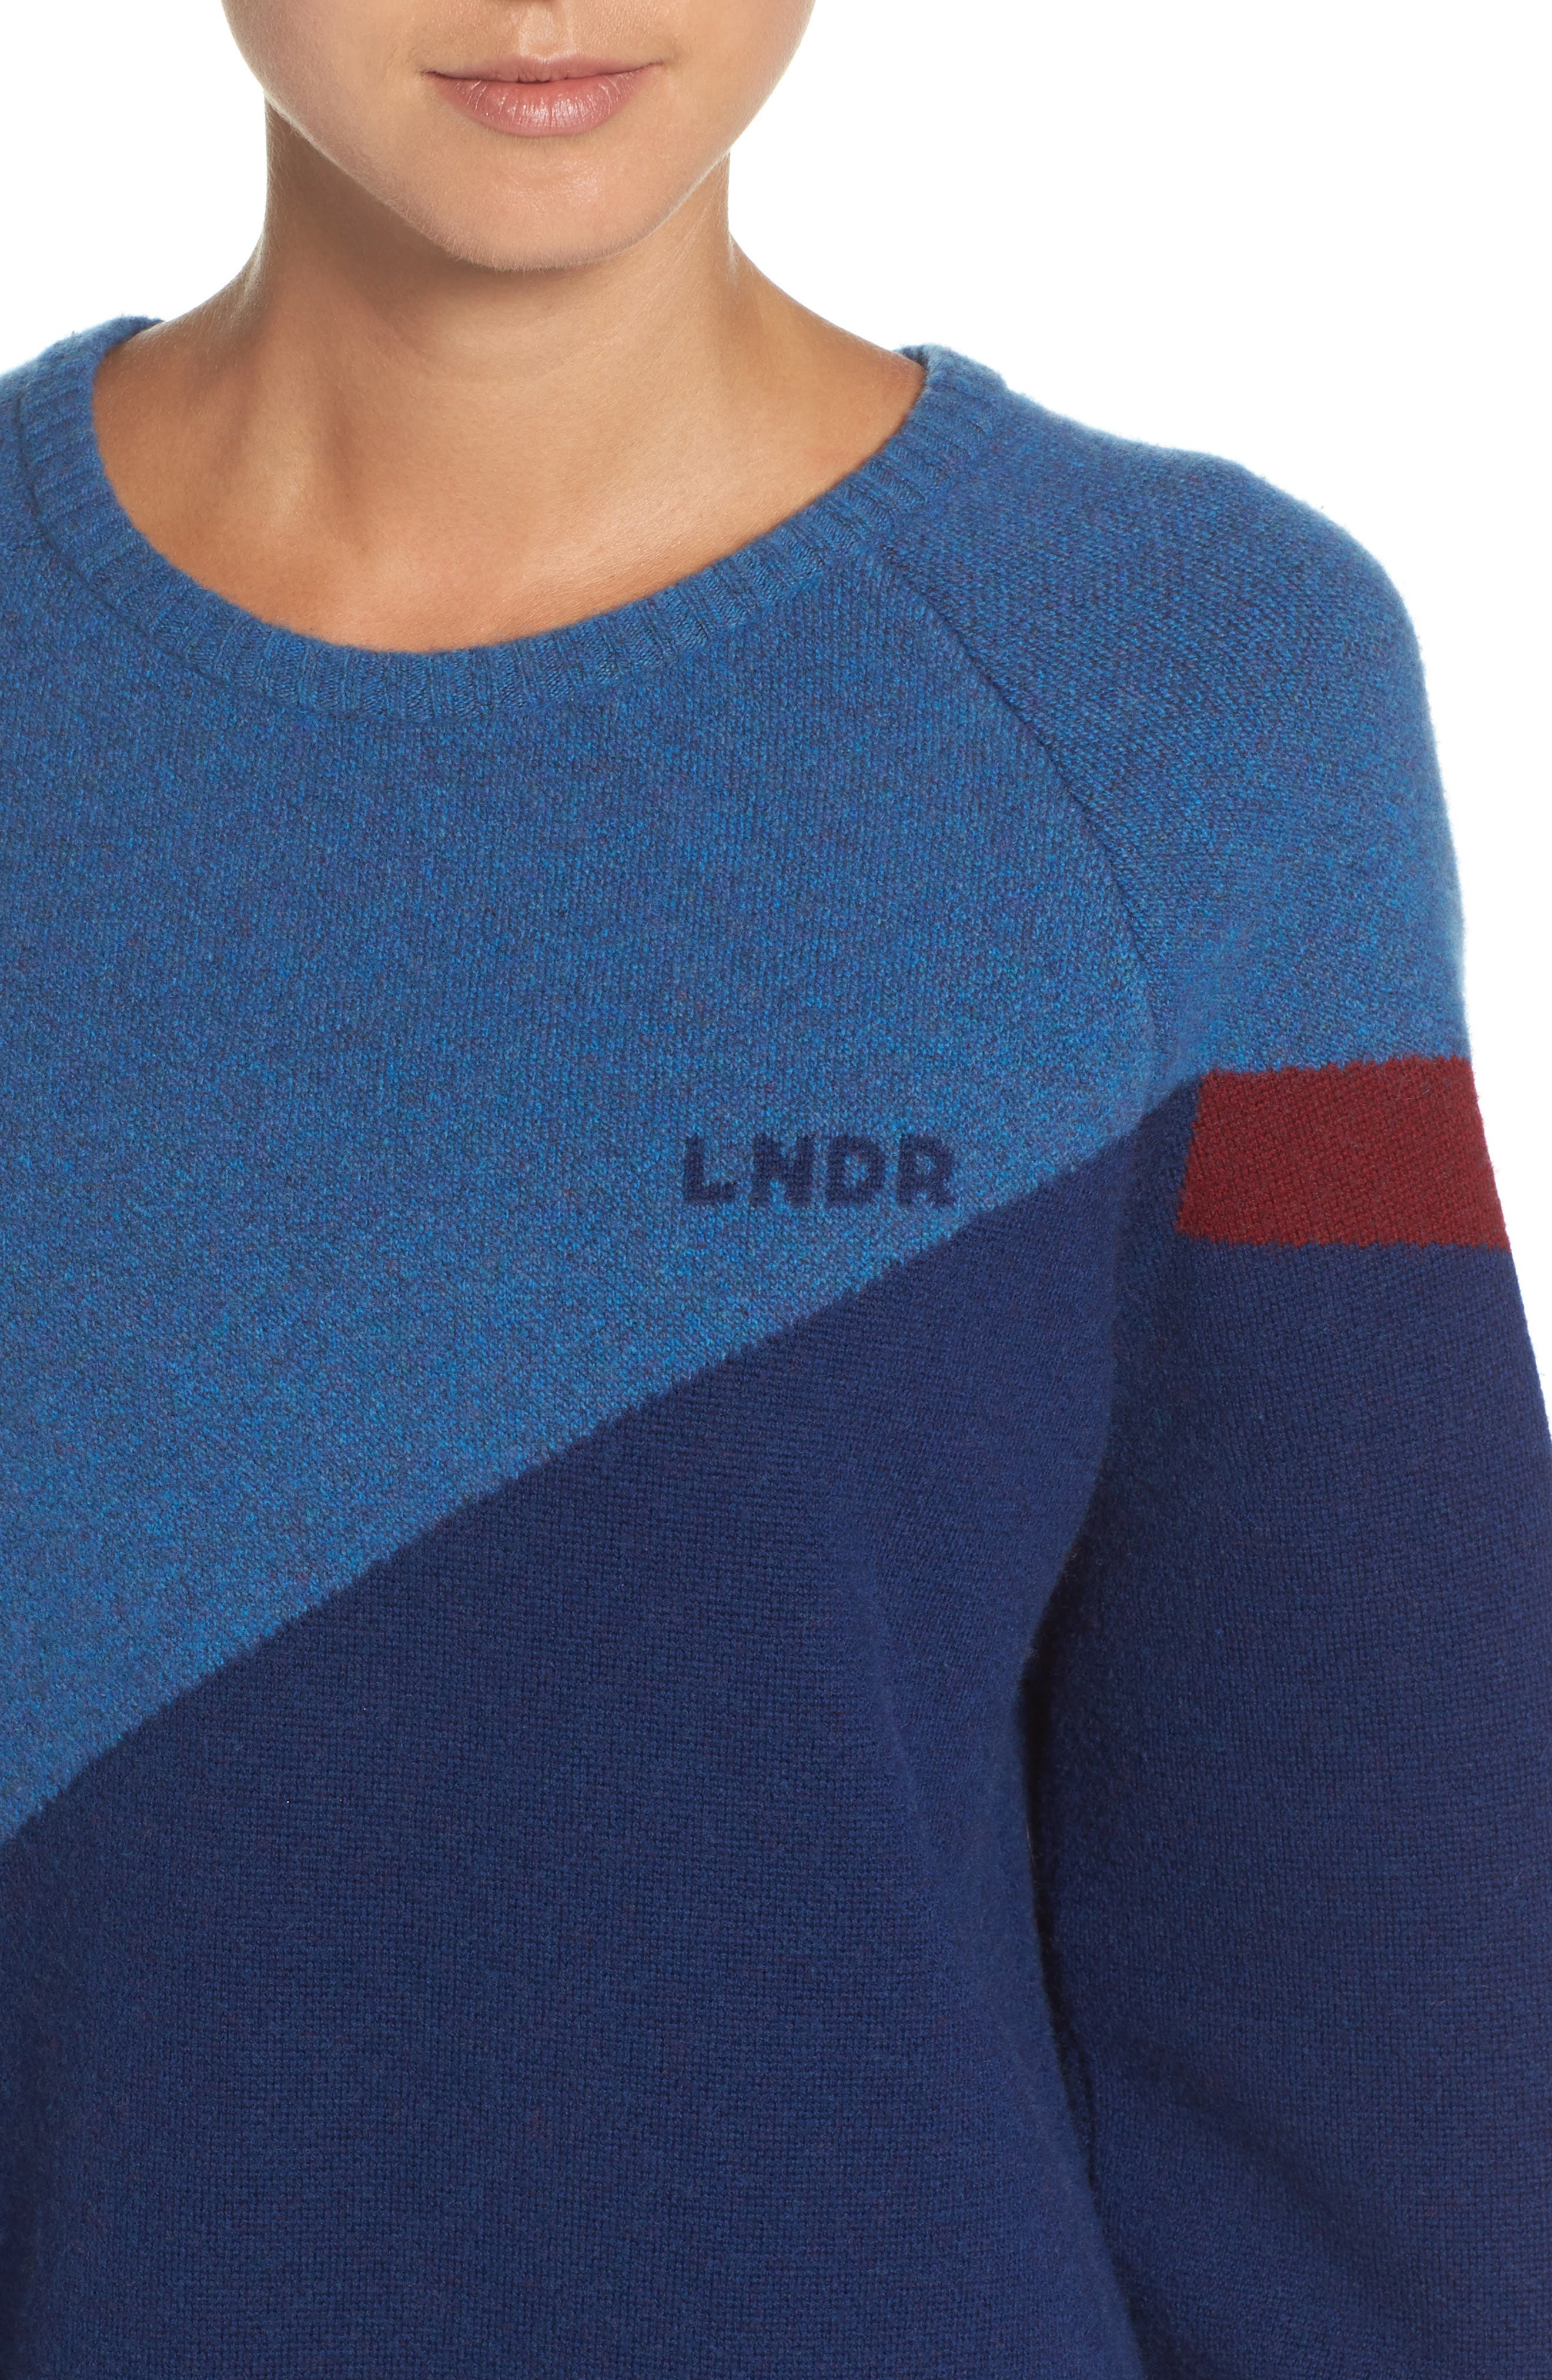 Winter Waterboy Sweater,                             Alternate thumbnail 4, color,                             Burgundy